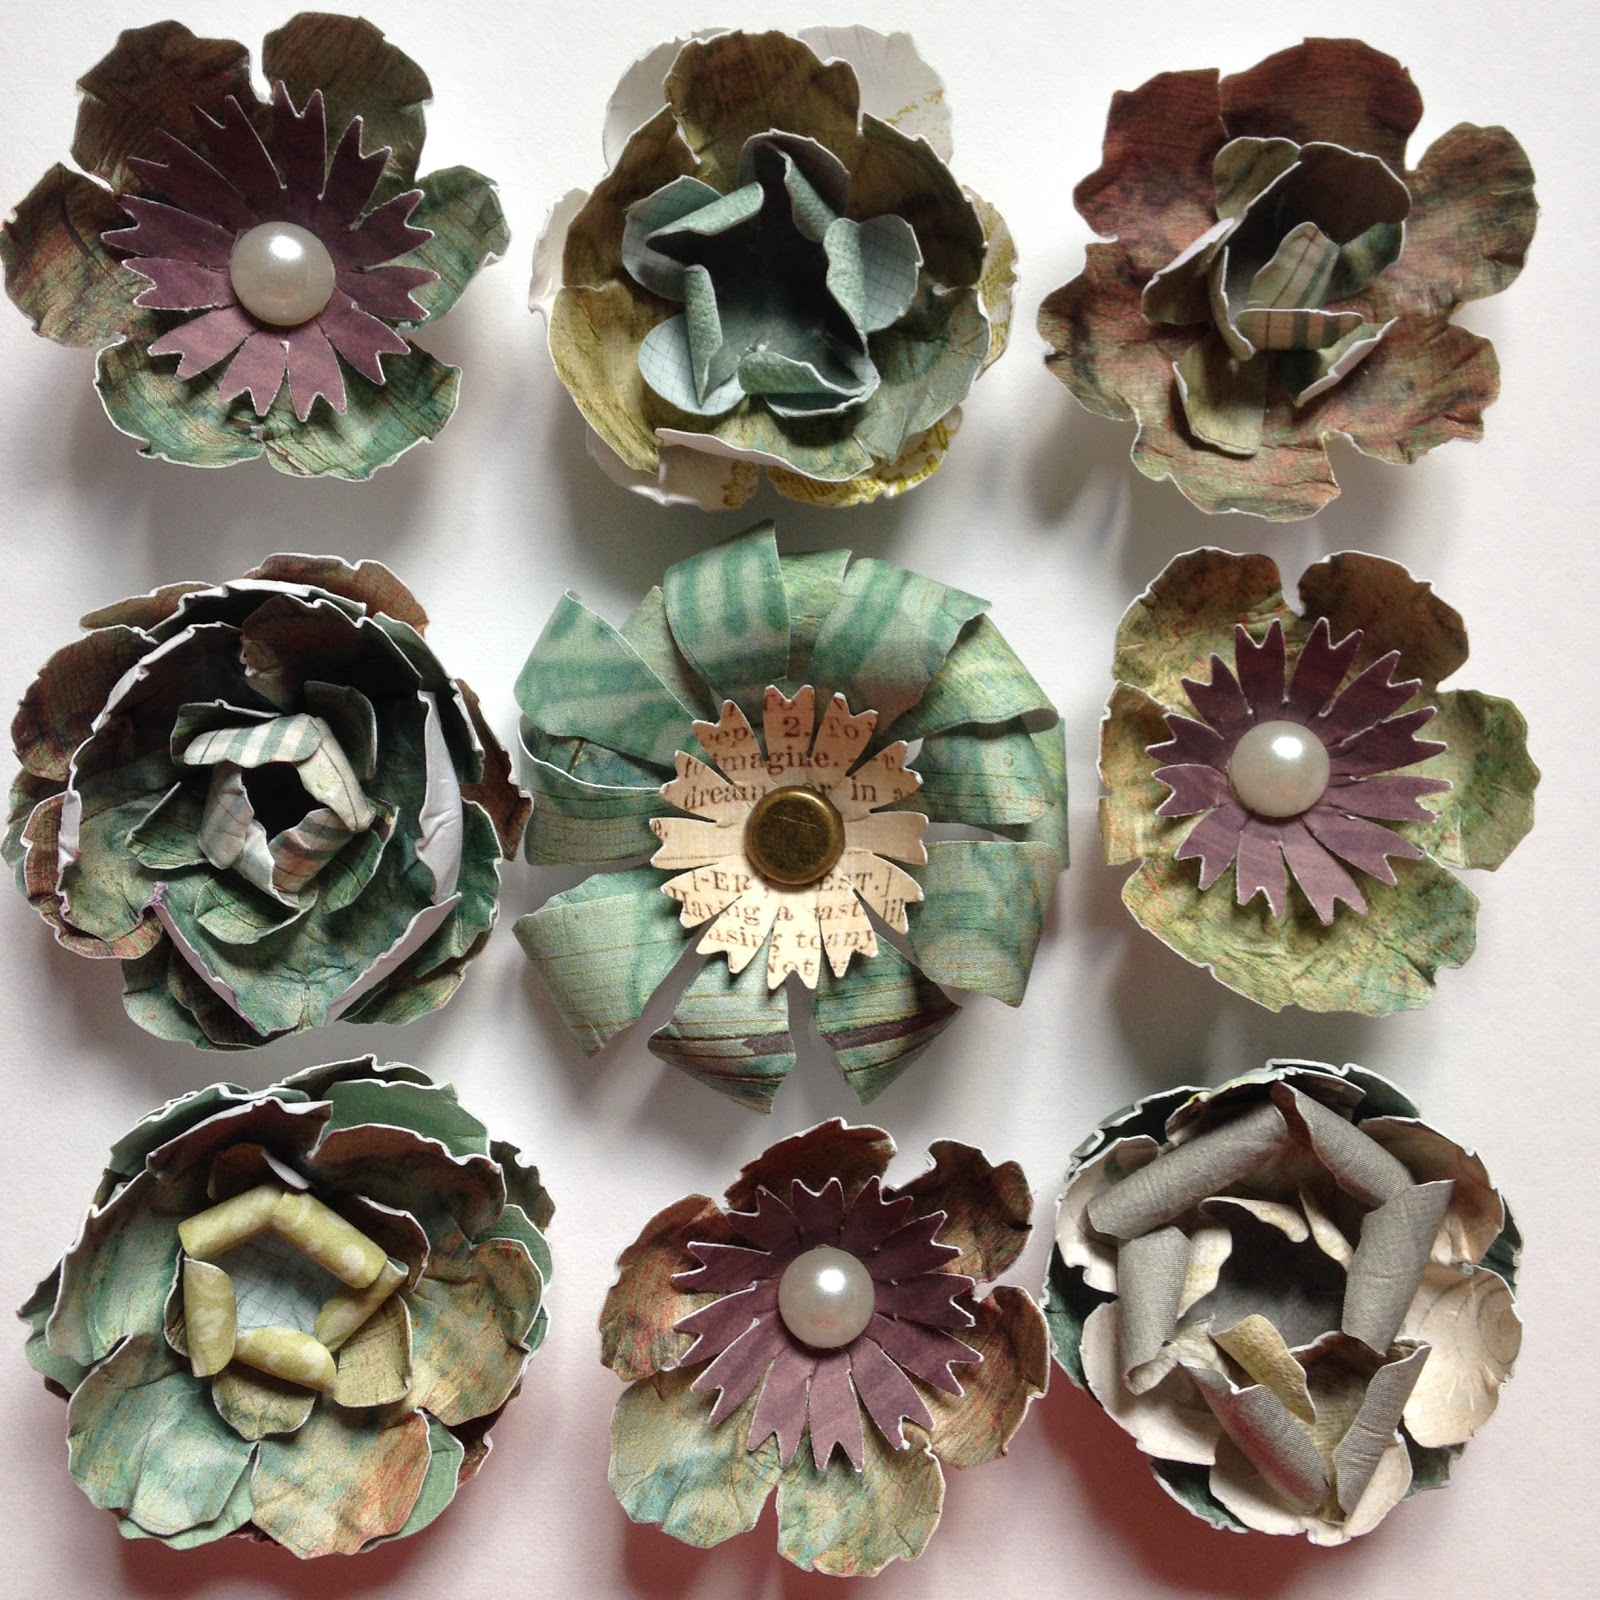 Sewpaperpaint tips and tricks for making diy paper flowers using flowers 1 mightylinksfo